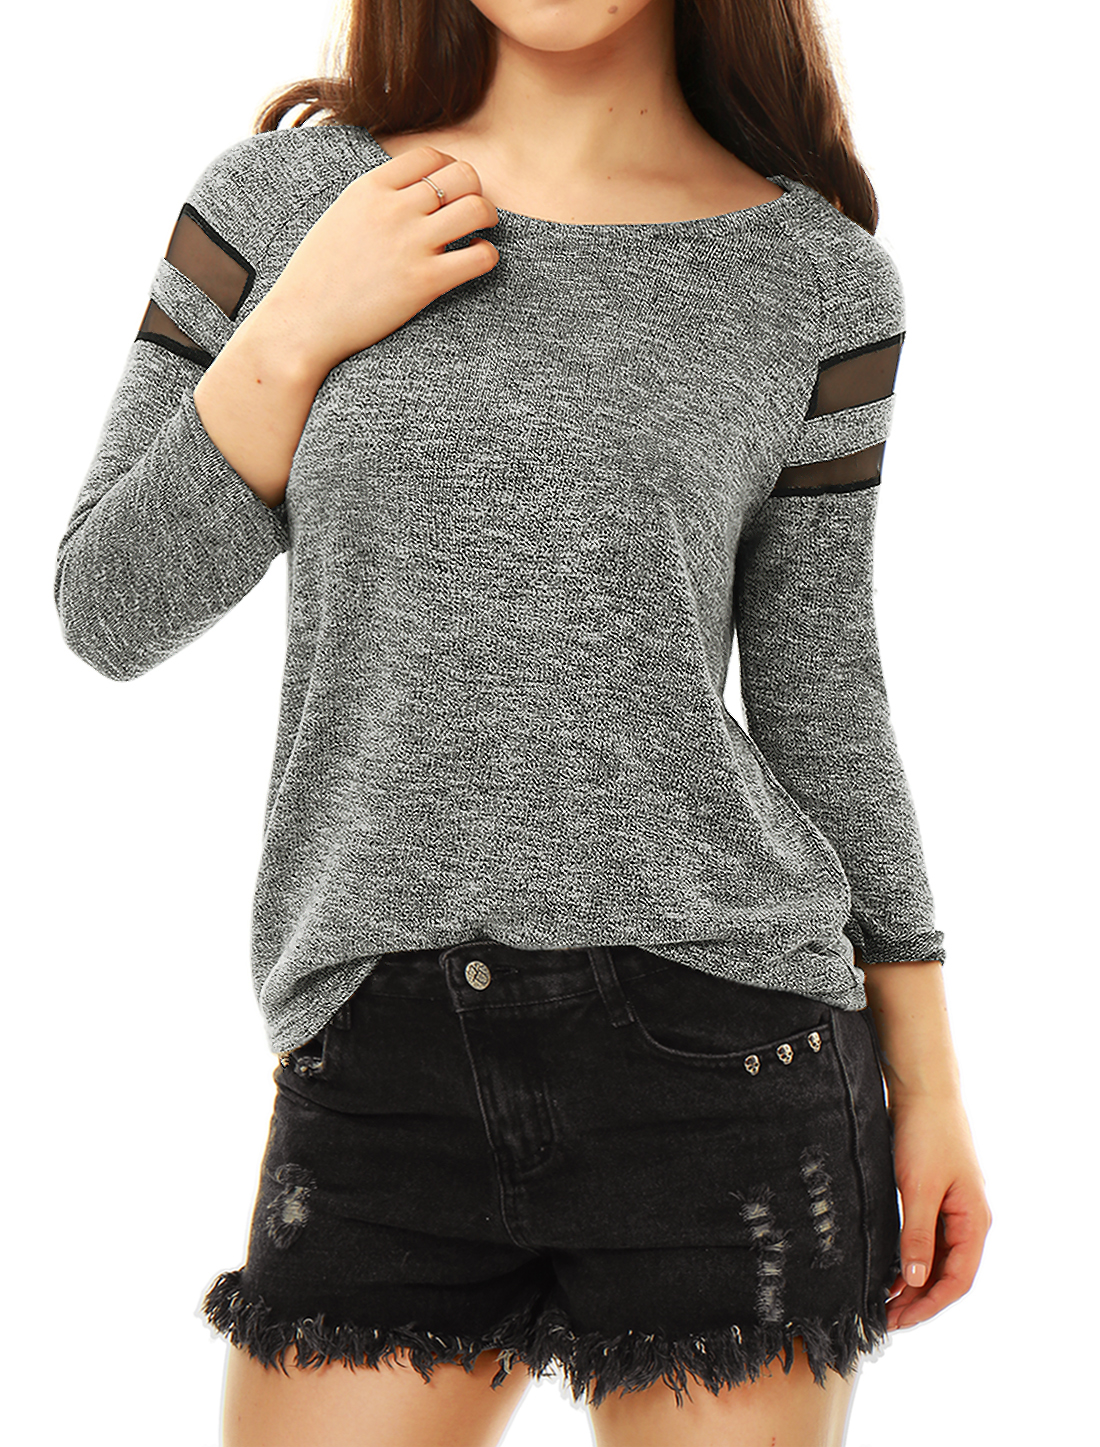 Women Mesh Panel Long Sleeve Scoop Neck Leisure T Shirts Heather Gray XL